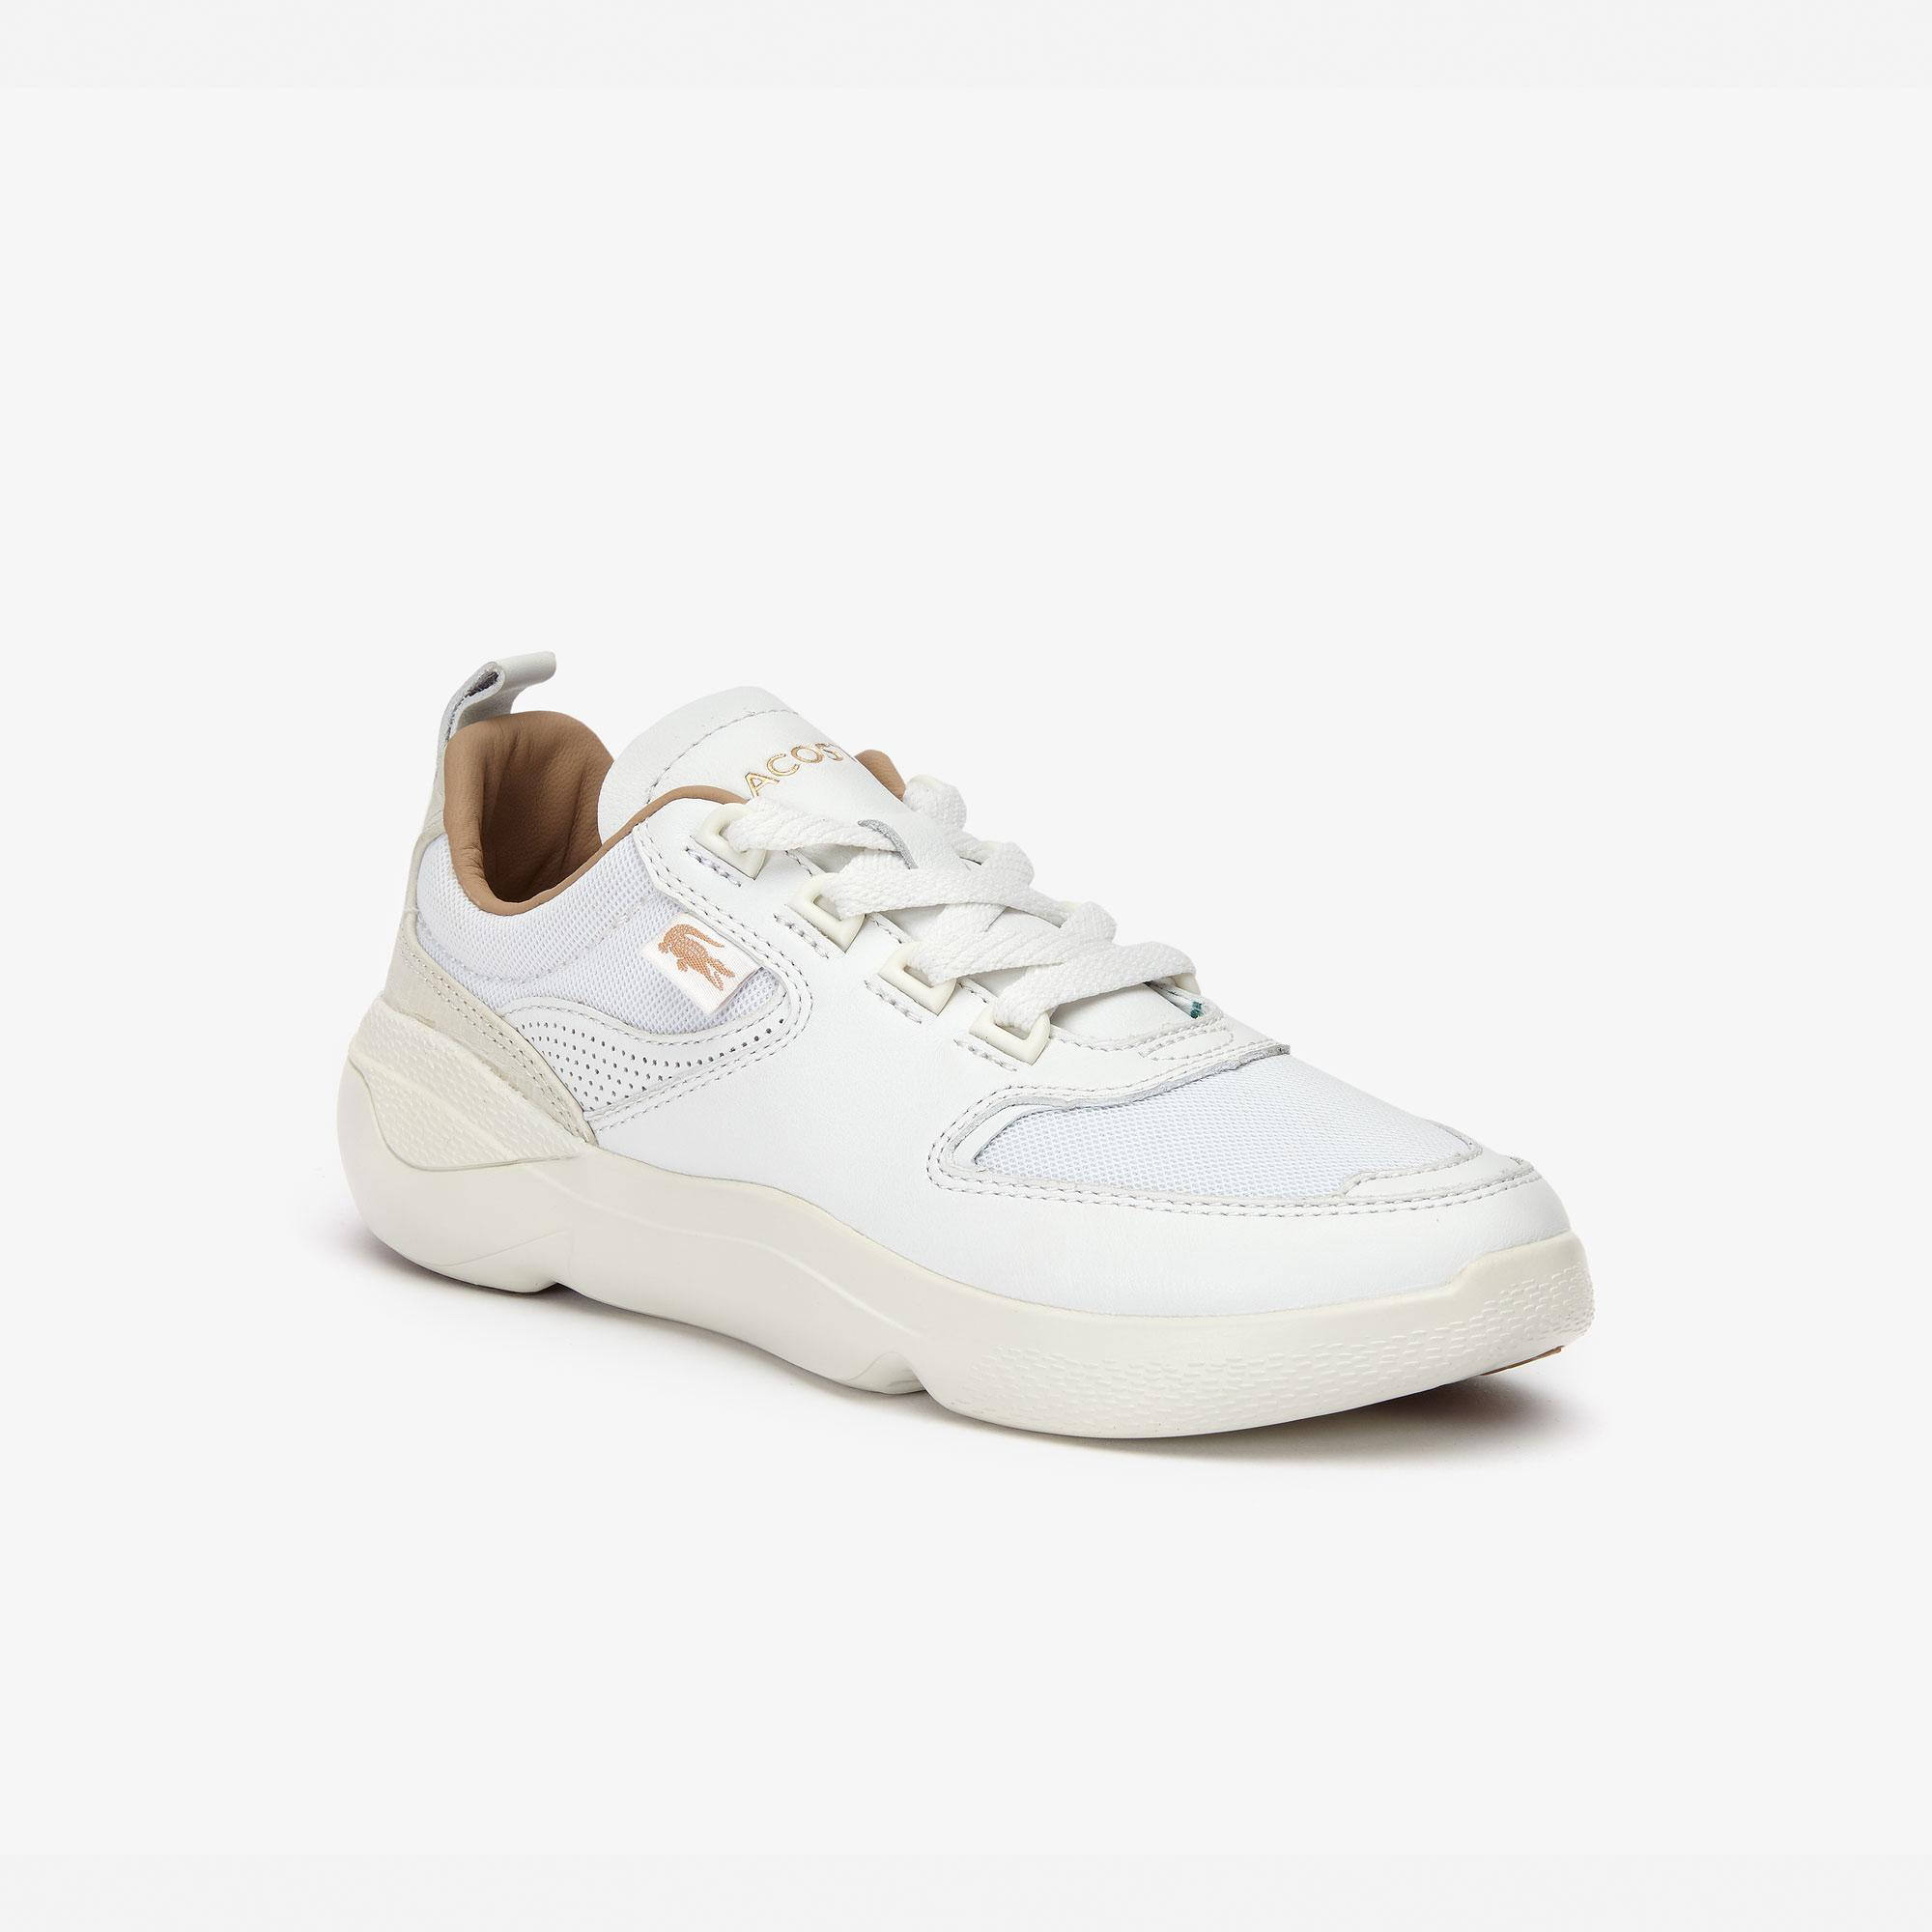 Lacoste Wildcard 319 2 Sfa Women's Sneakers